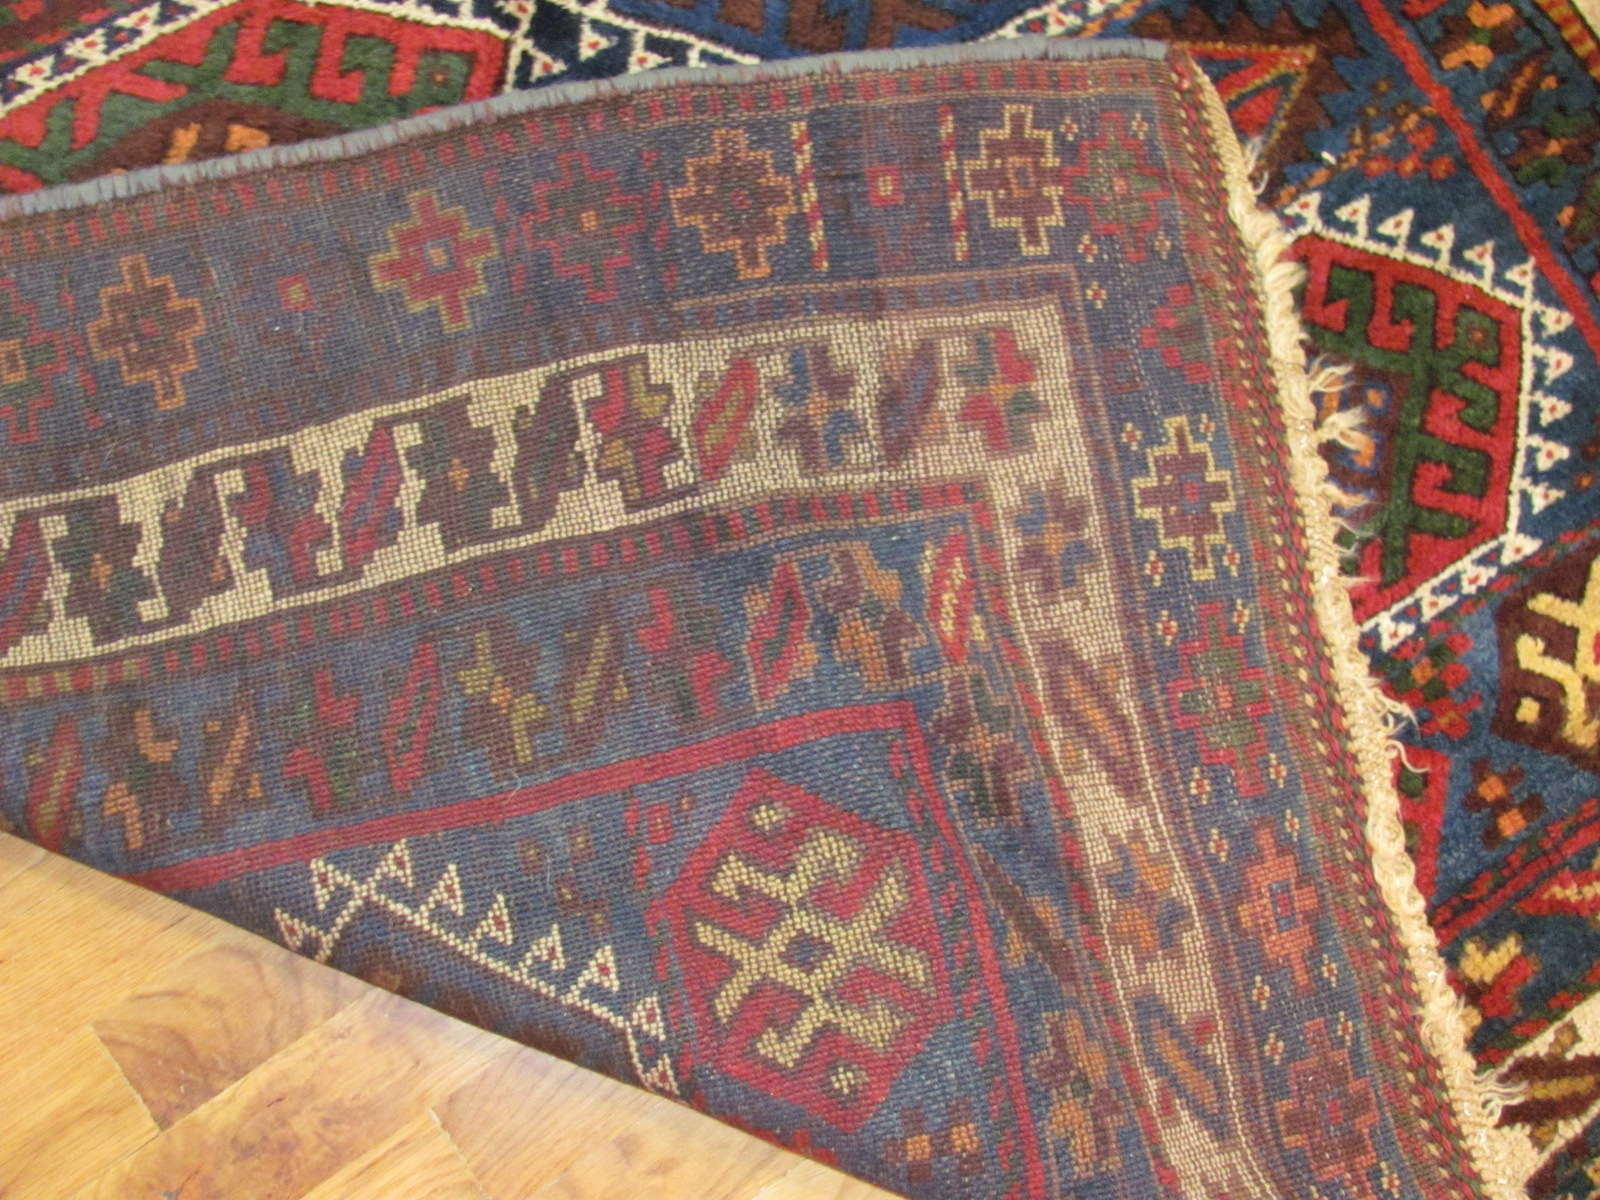 24554 antique persian joffee kurd rug 4,9x7,9 -3